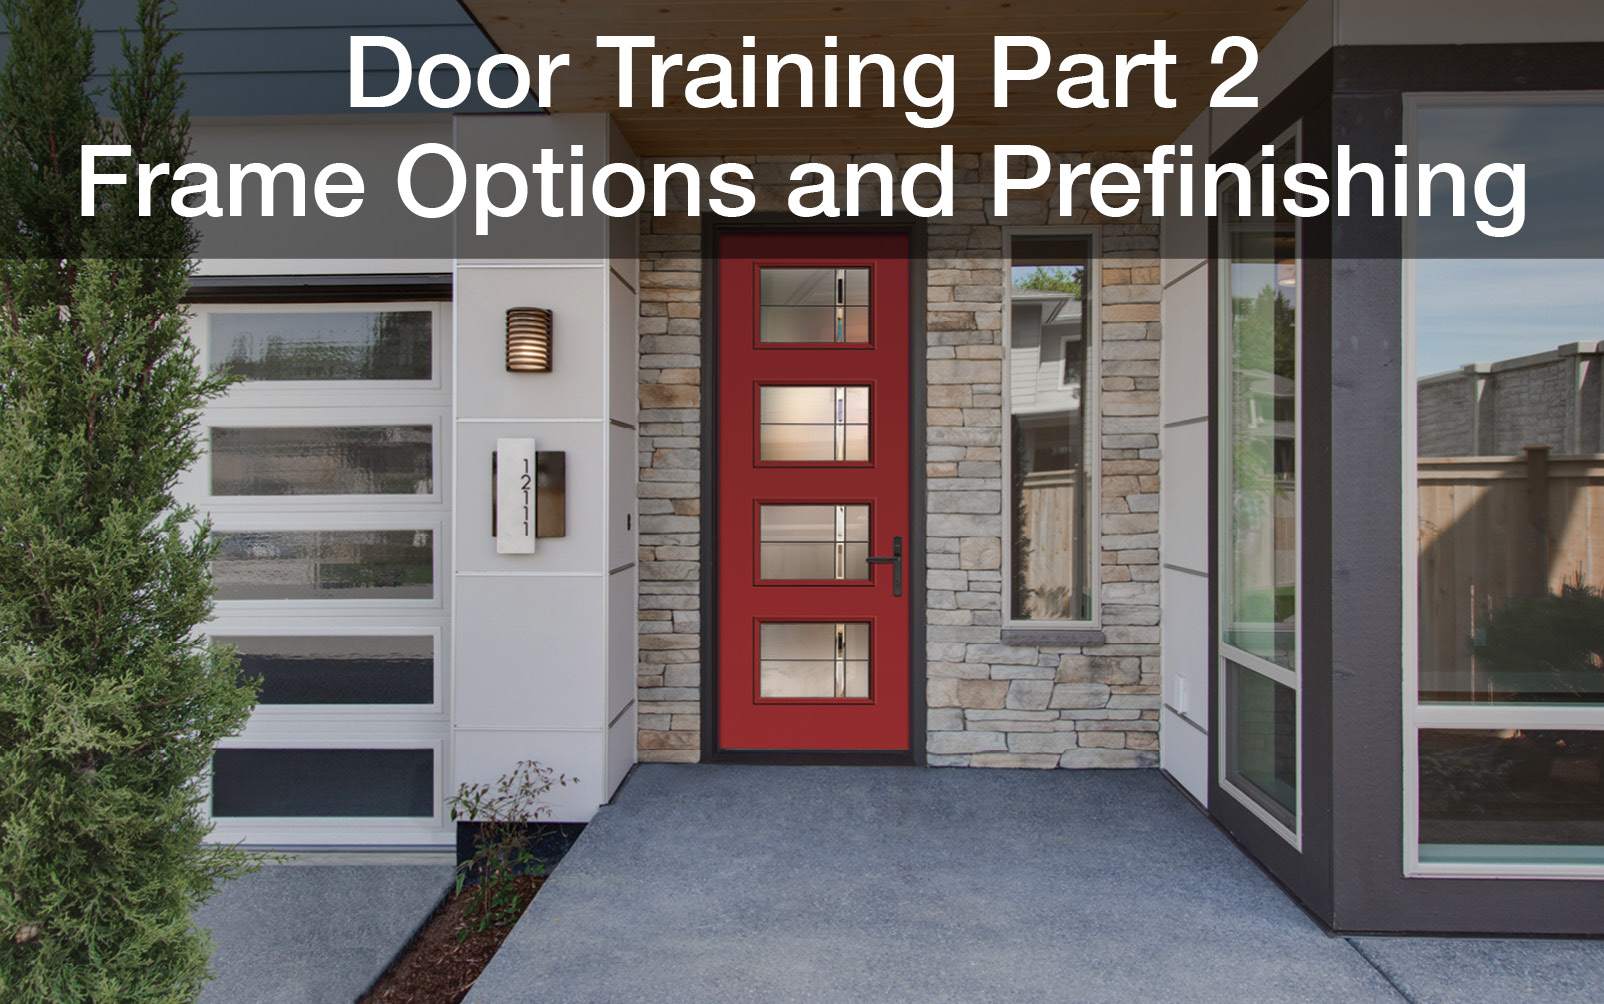 Door Training Part 2 | Frame Options and Prefinishing